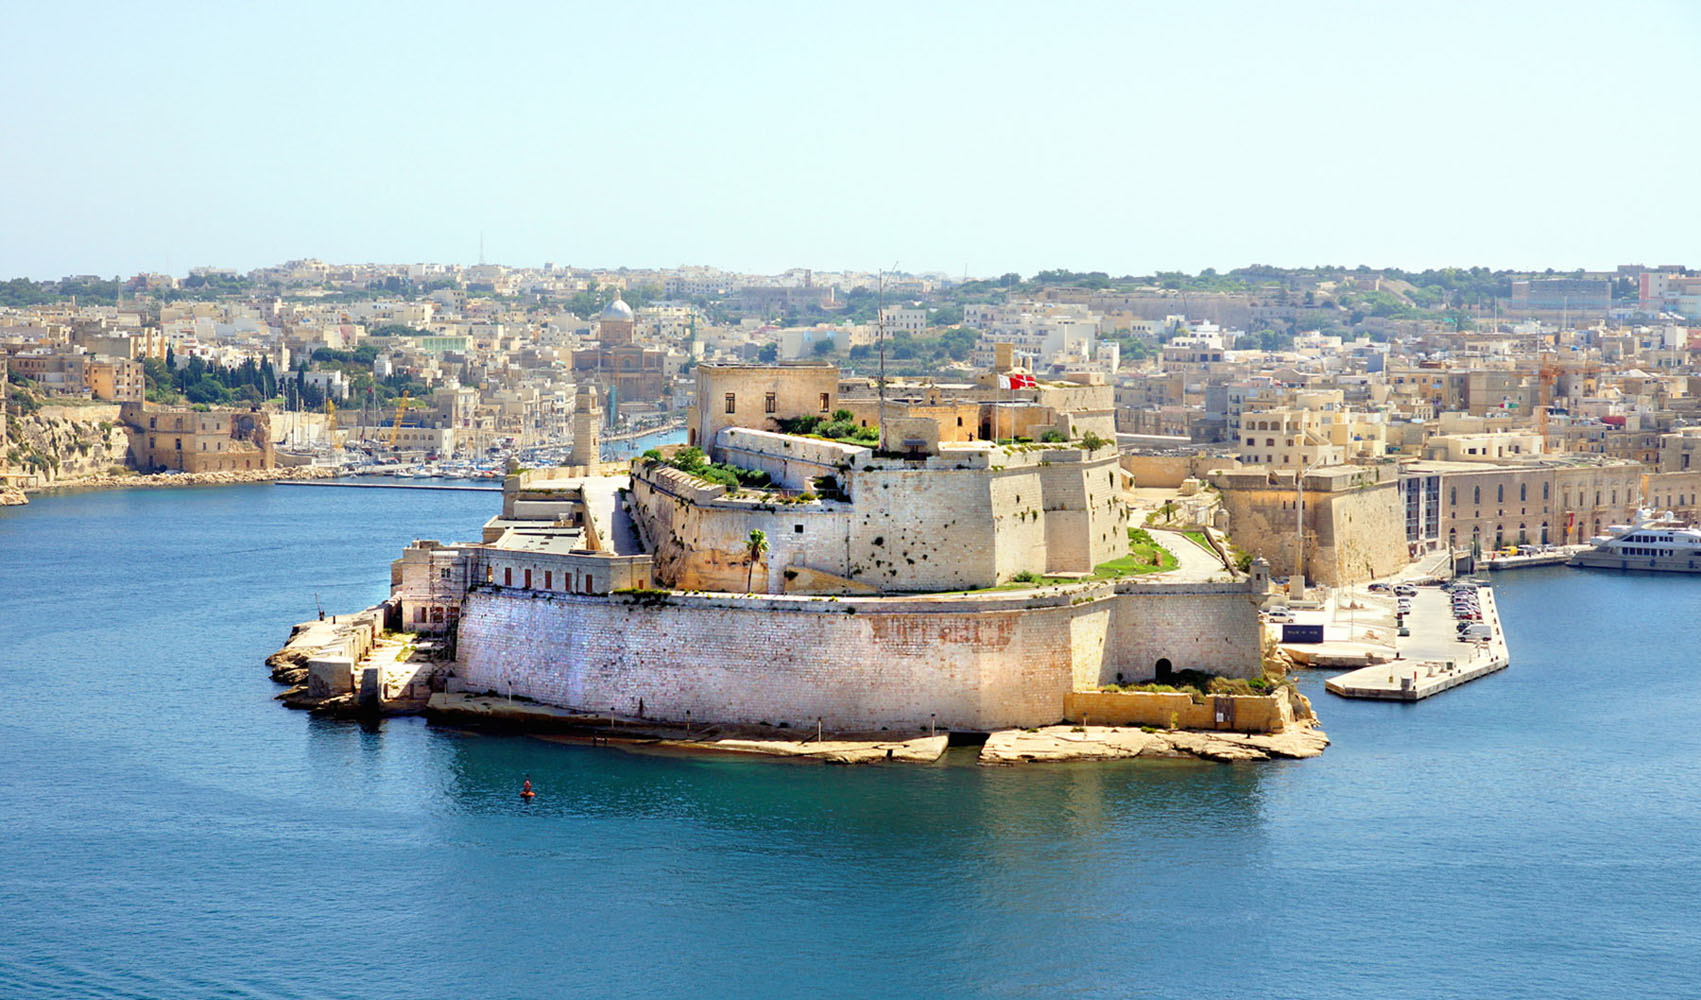 If you've never been to Malta, you're missing out.